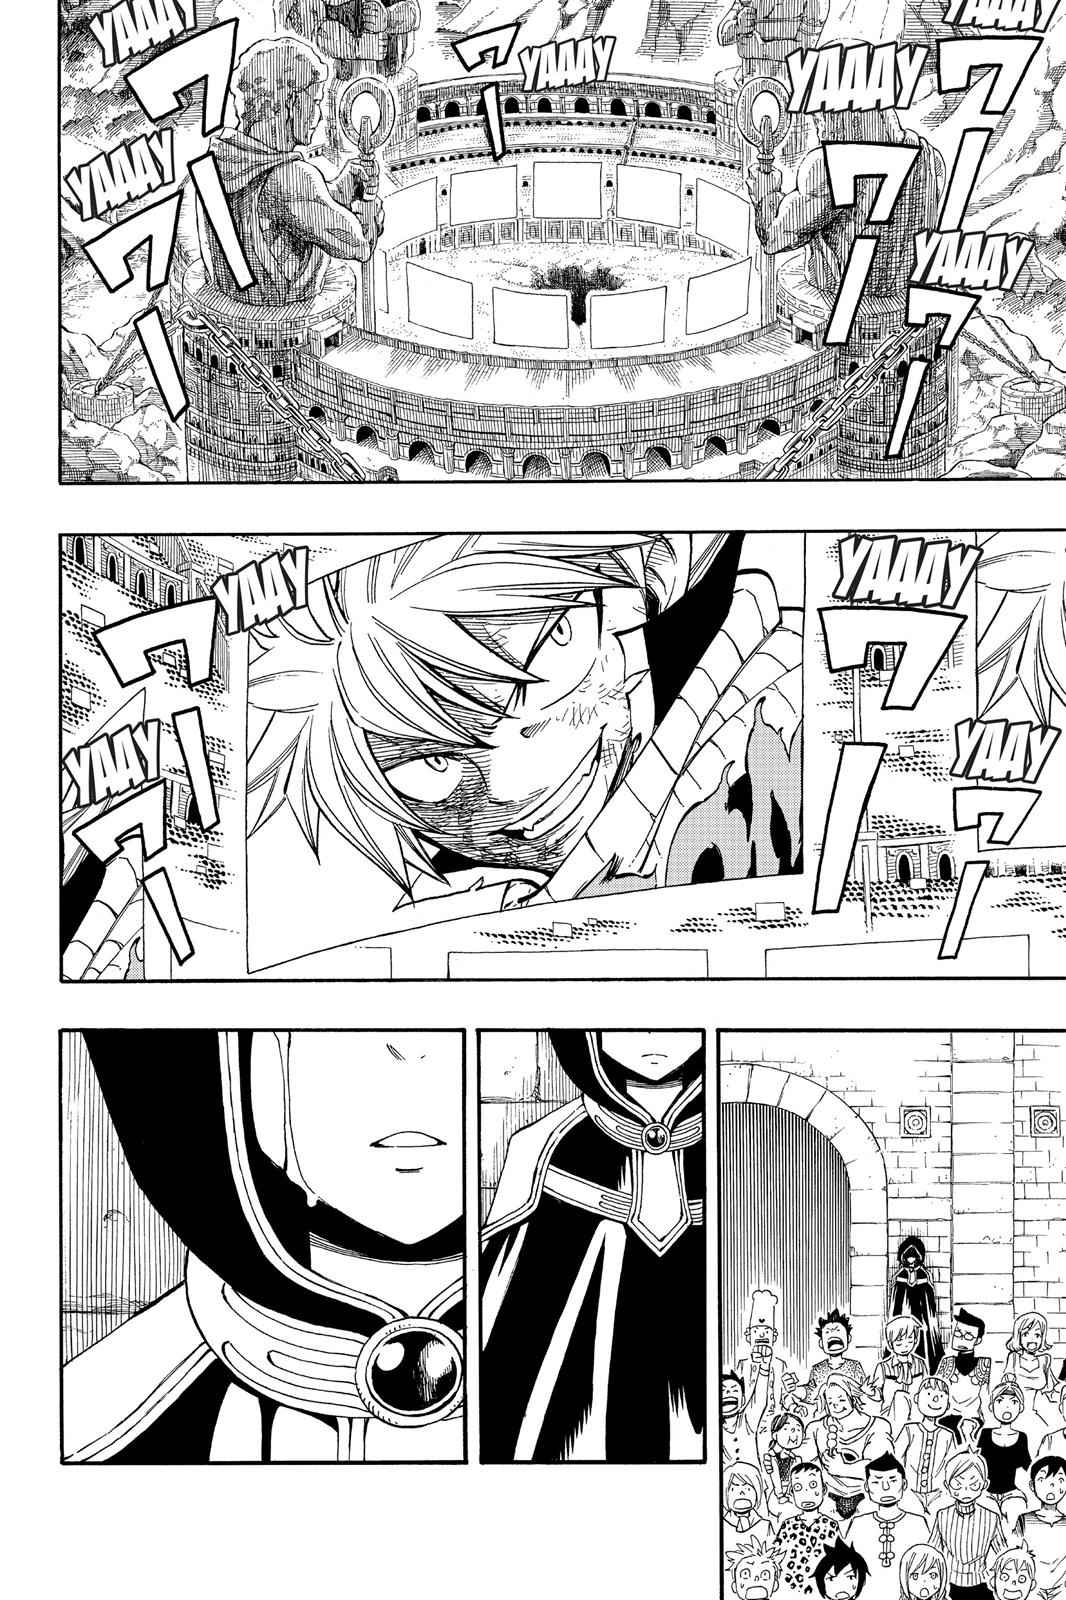 Fairy Tail Chapter 296 Page 2